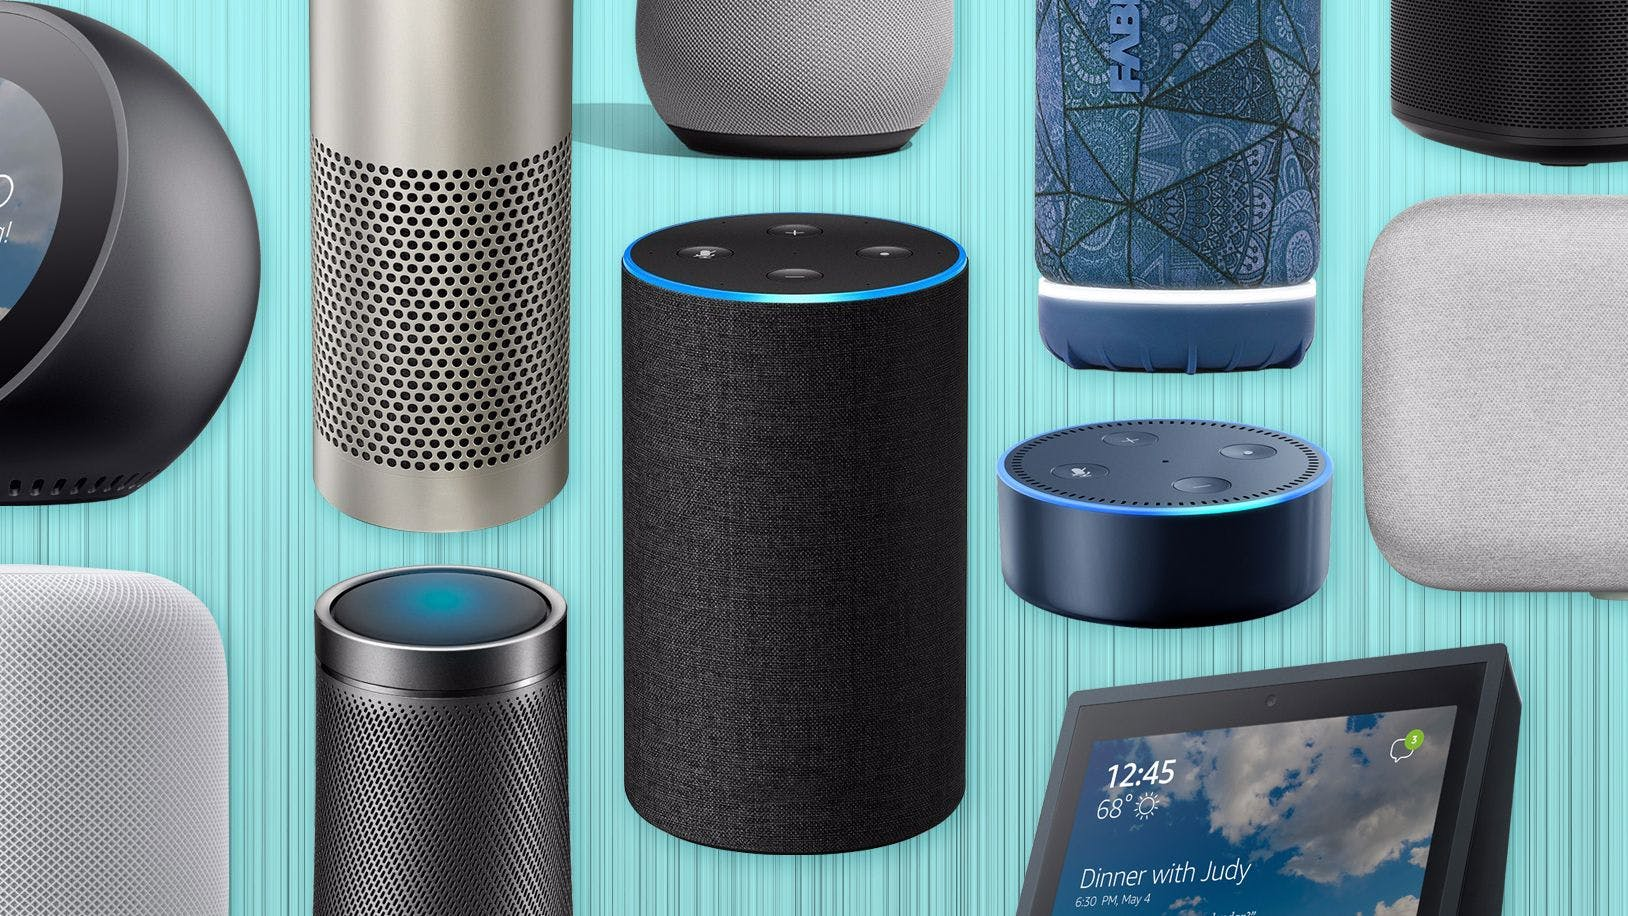 Smart speakers are becoming more and more popular within the smart home technology industry / Image Credit: TechHive